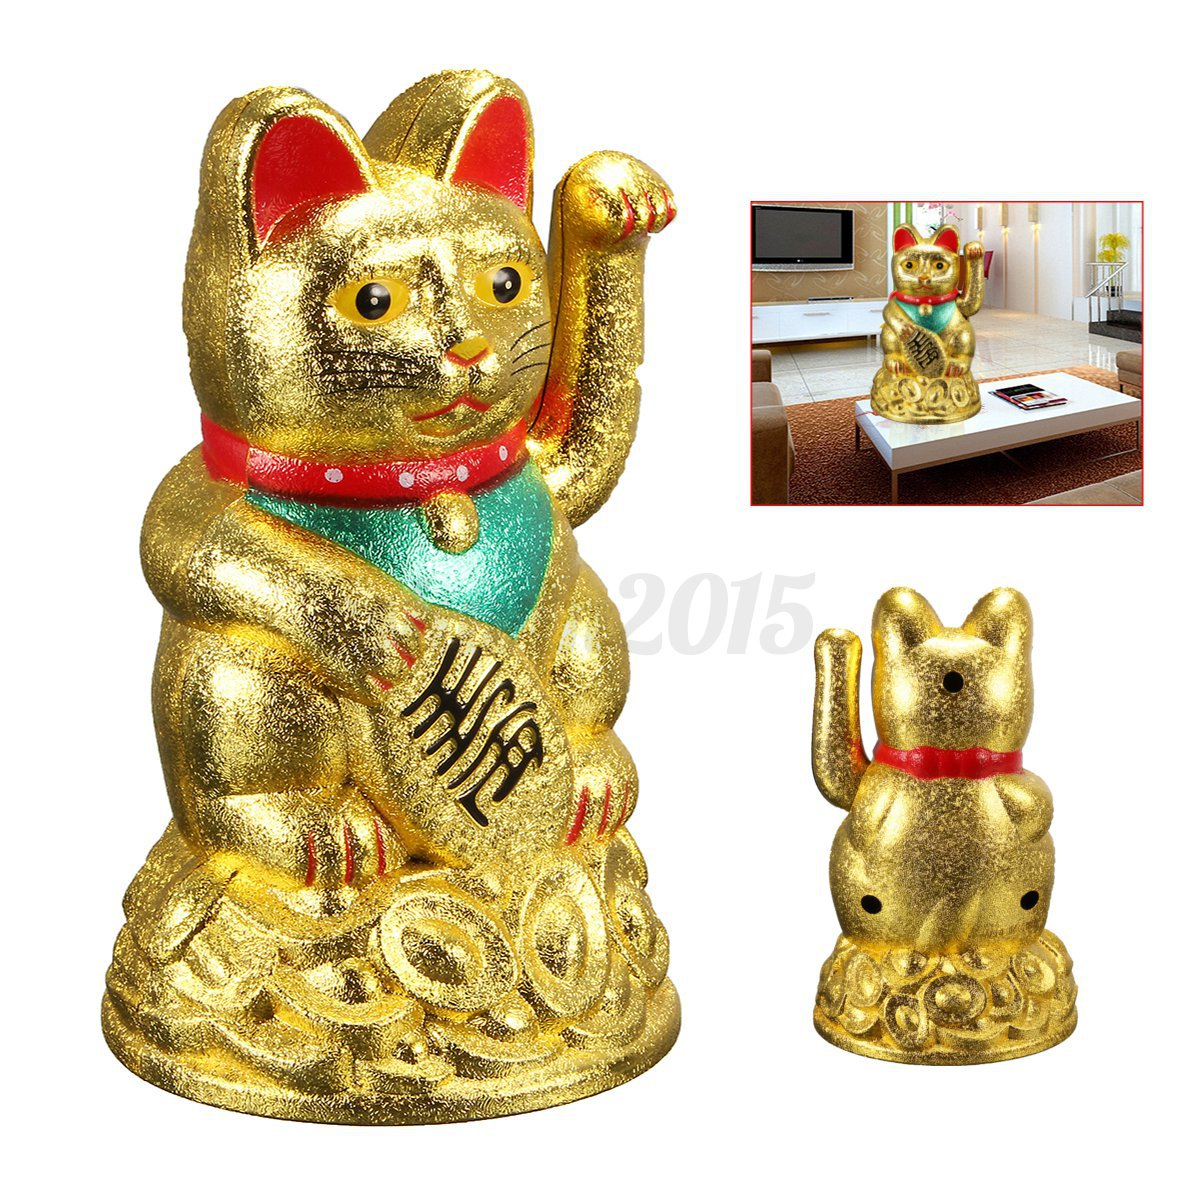 4 5 feng shui fortune gold ingot chinese lucky wealth waving cat by aa battery 936746777862 ebay. Black Bedroom Furniture Sets. Home Design Ideas